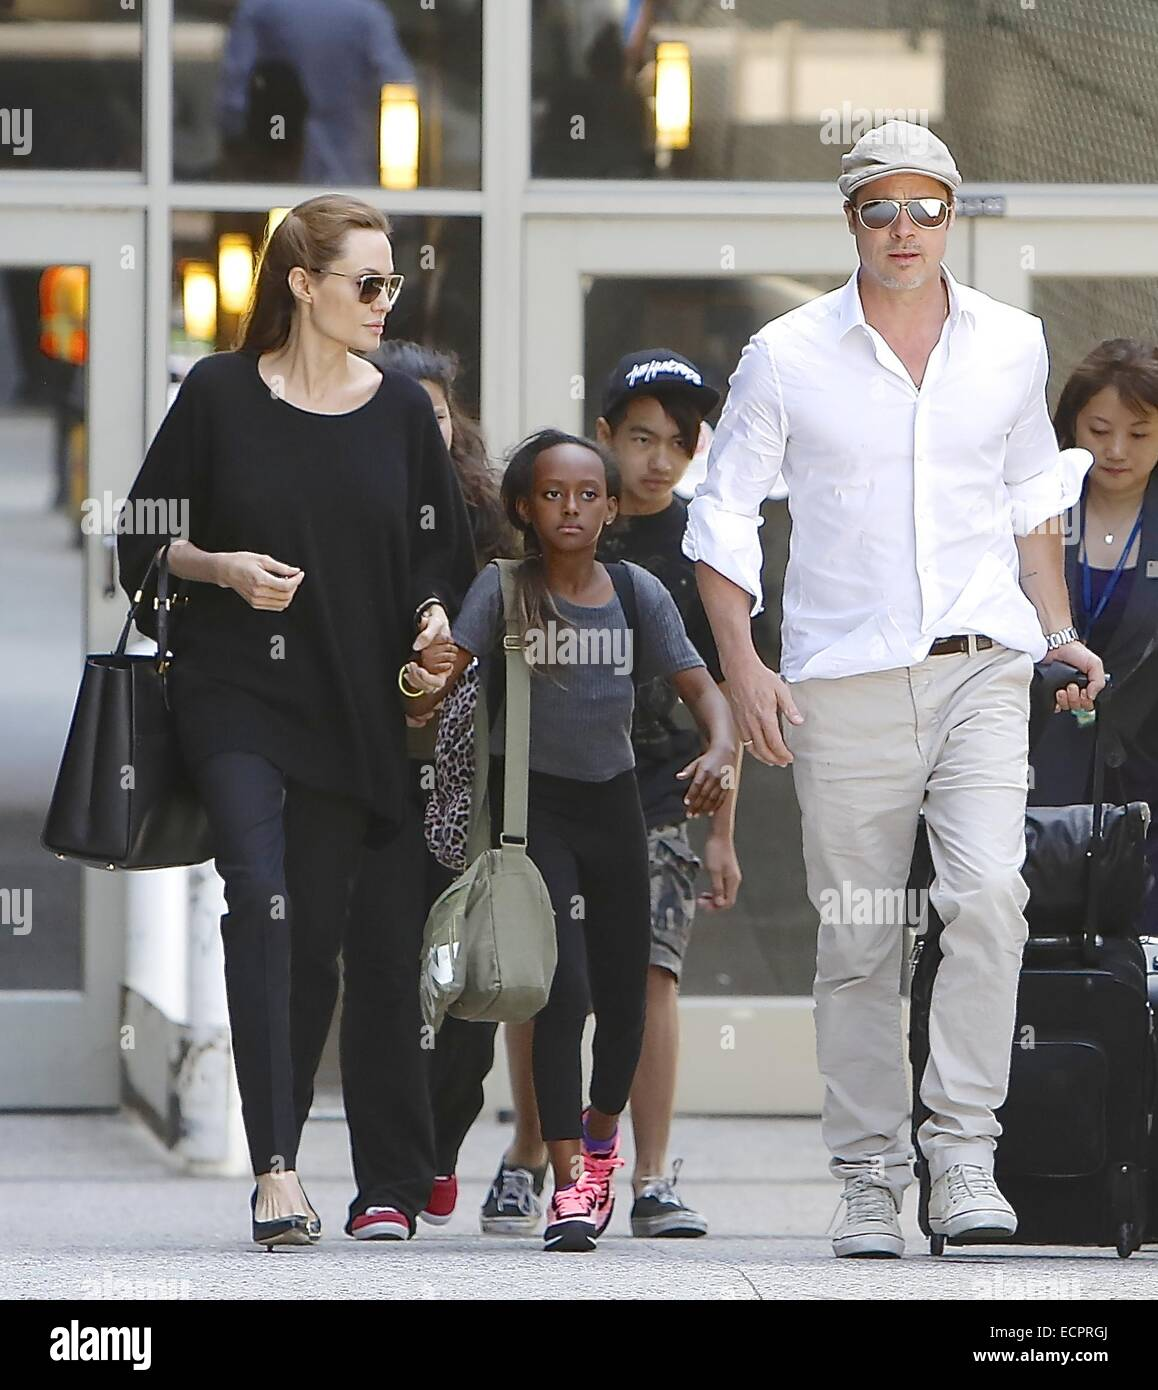 Brad Pitt and Angelina Jolie arrive at Los Angeles International (LAX) airport with their children Maddox and Zahara - Stock Image